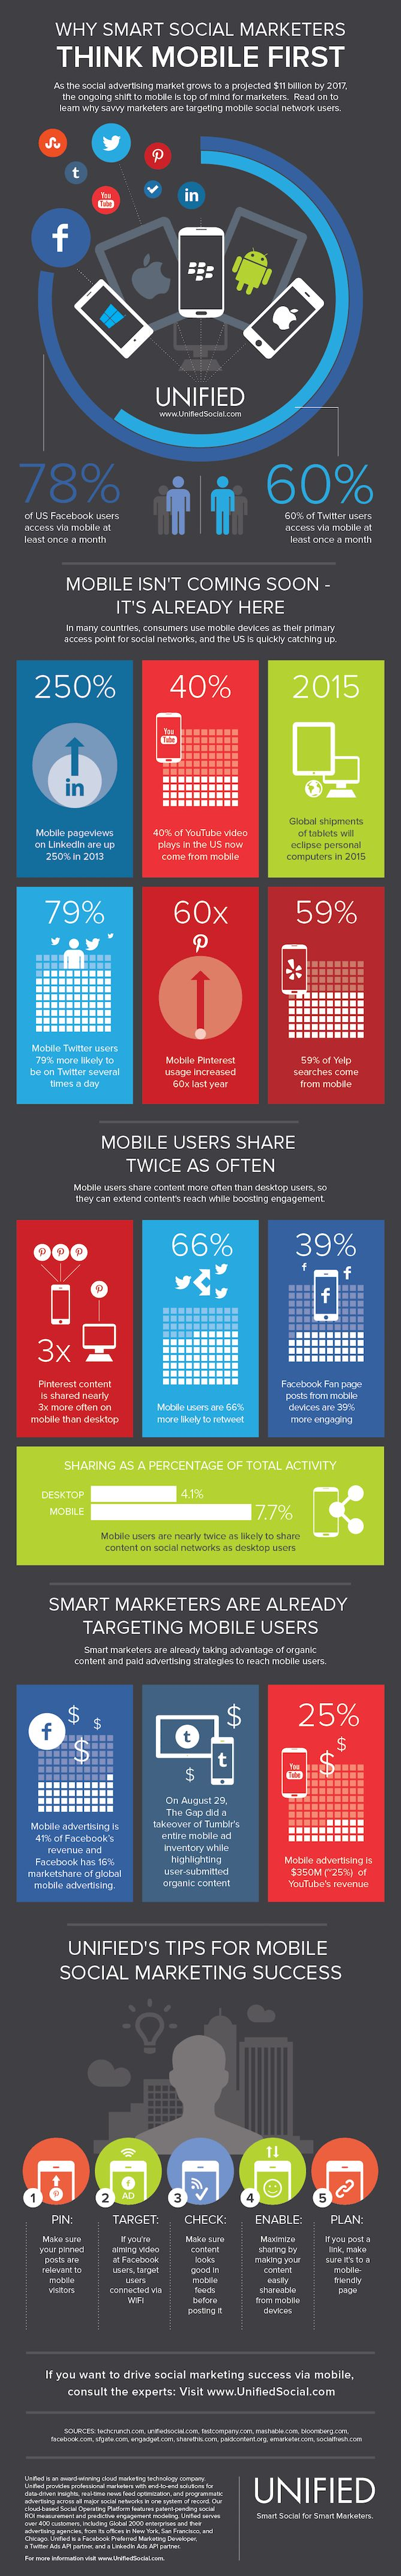 Why Smart Social Marketers Think Mobile First - #infographic